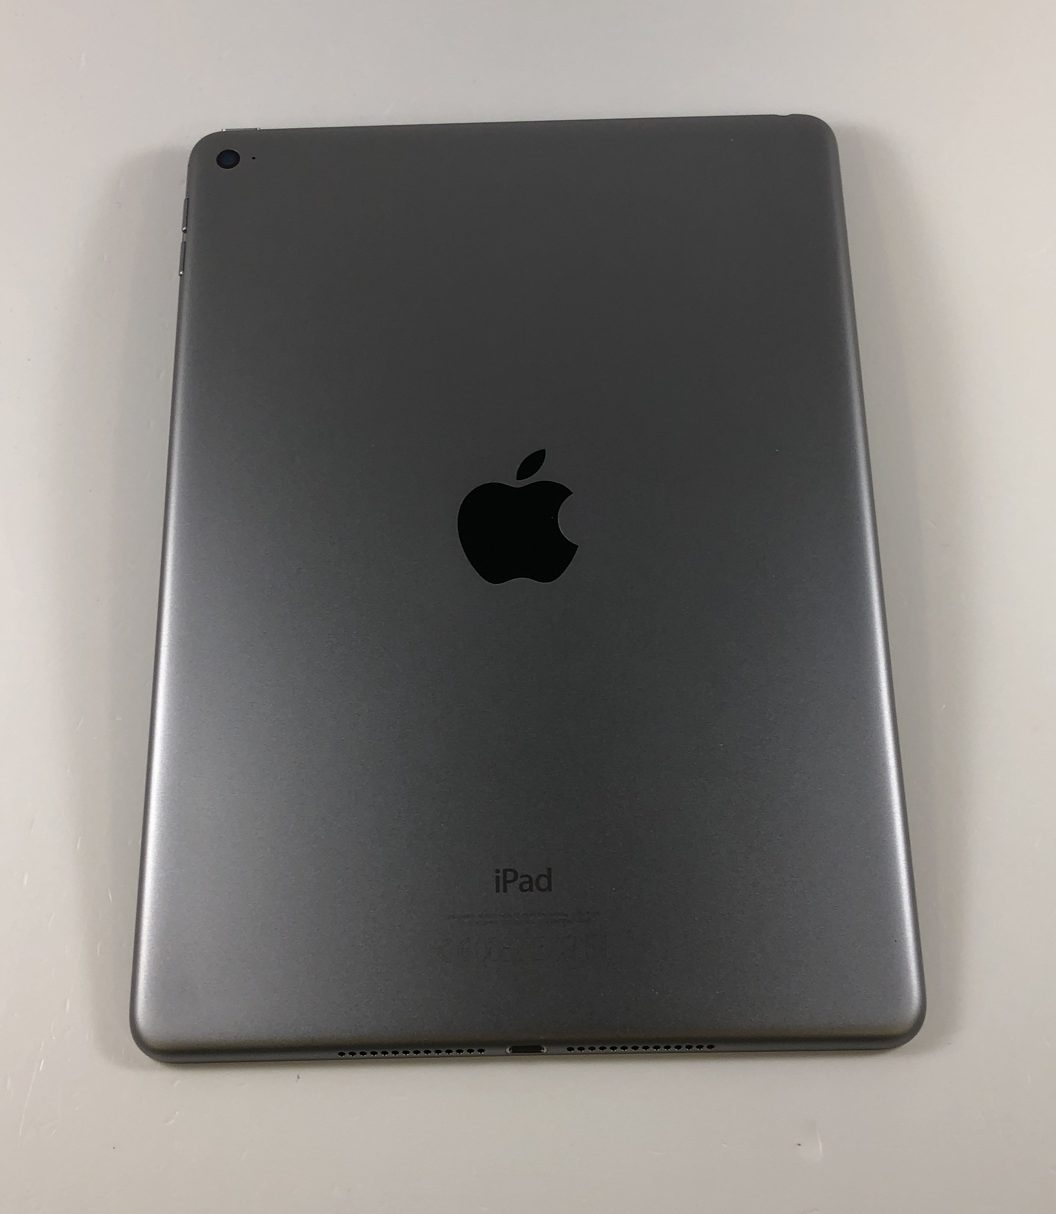 iPad Air 2 Wi-Fi 128GB, 128GB, Space Gray, immagine 2